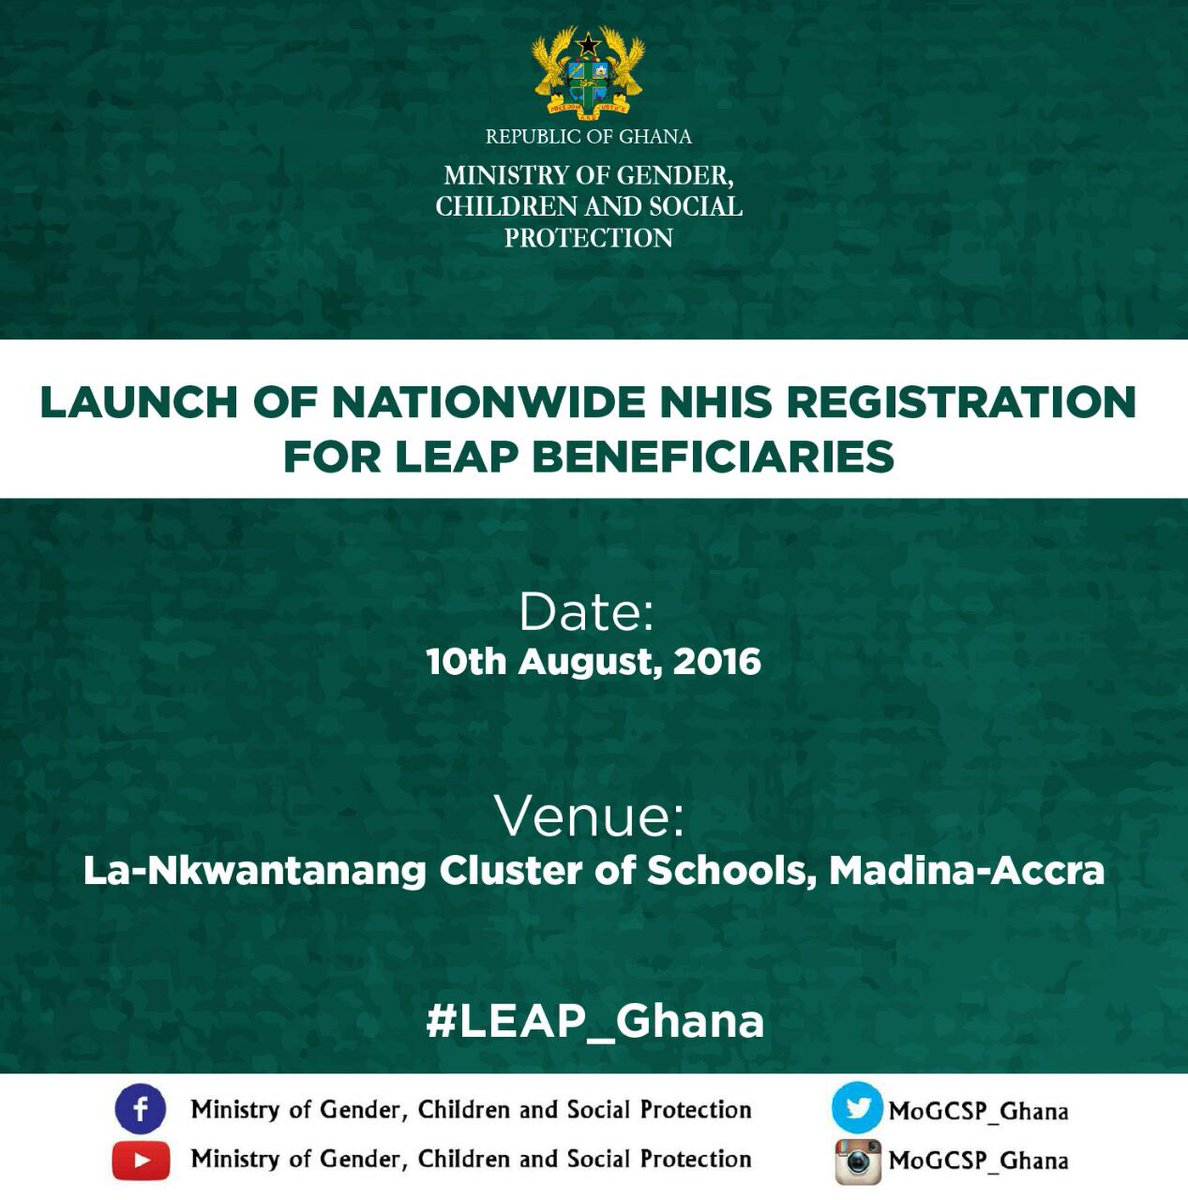 Join us to Launch the NHIS registration for LEAP beneficiaries on 10th August 2016 @HannaTetteh @NanaOyeLithur